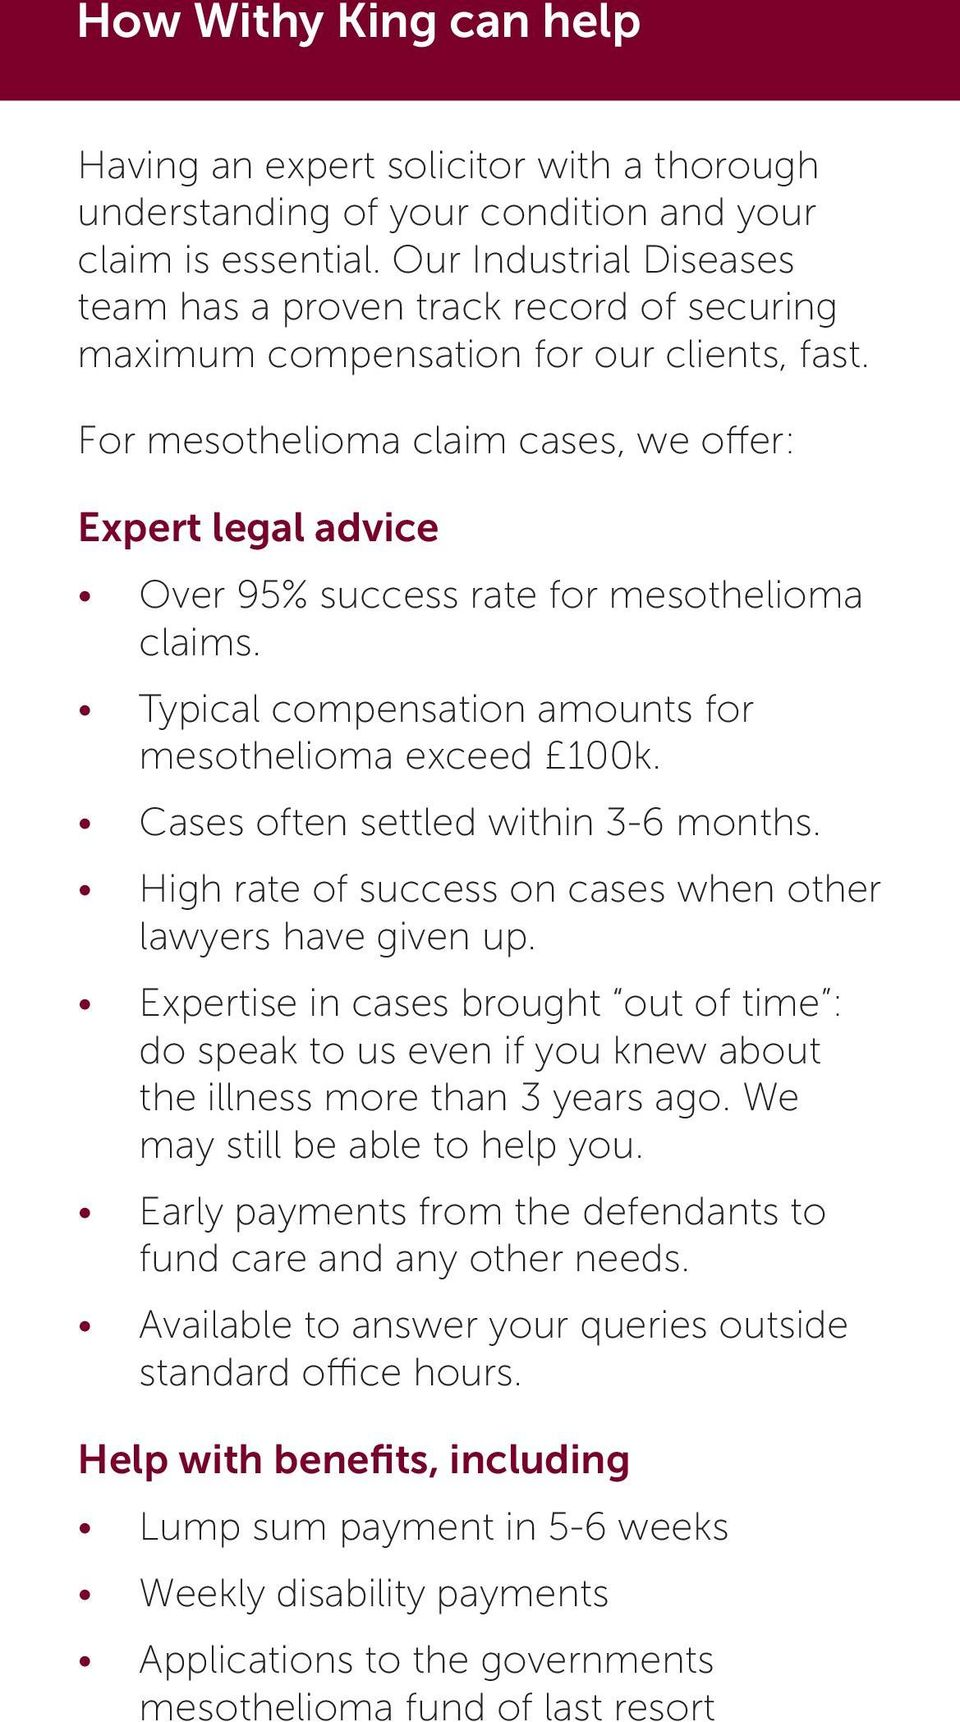 For mesothelioma claim cases, we offer: Expert legal advice Over 95% success rate for mesothelioma claims. Typical compensation amounts for mesothelioma exceed 100k.